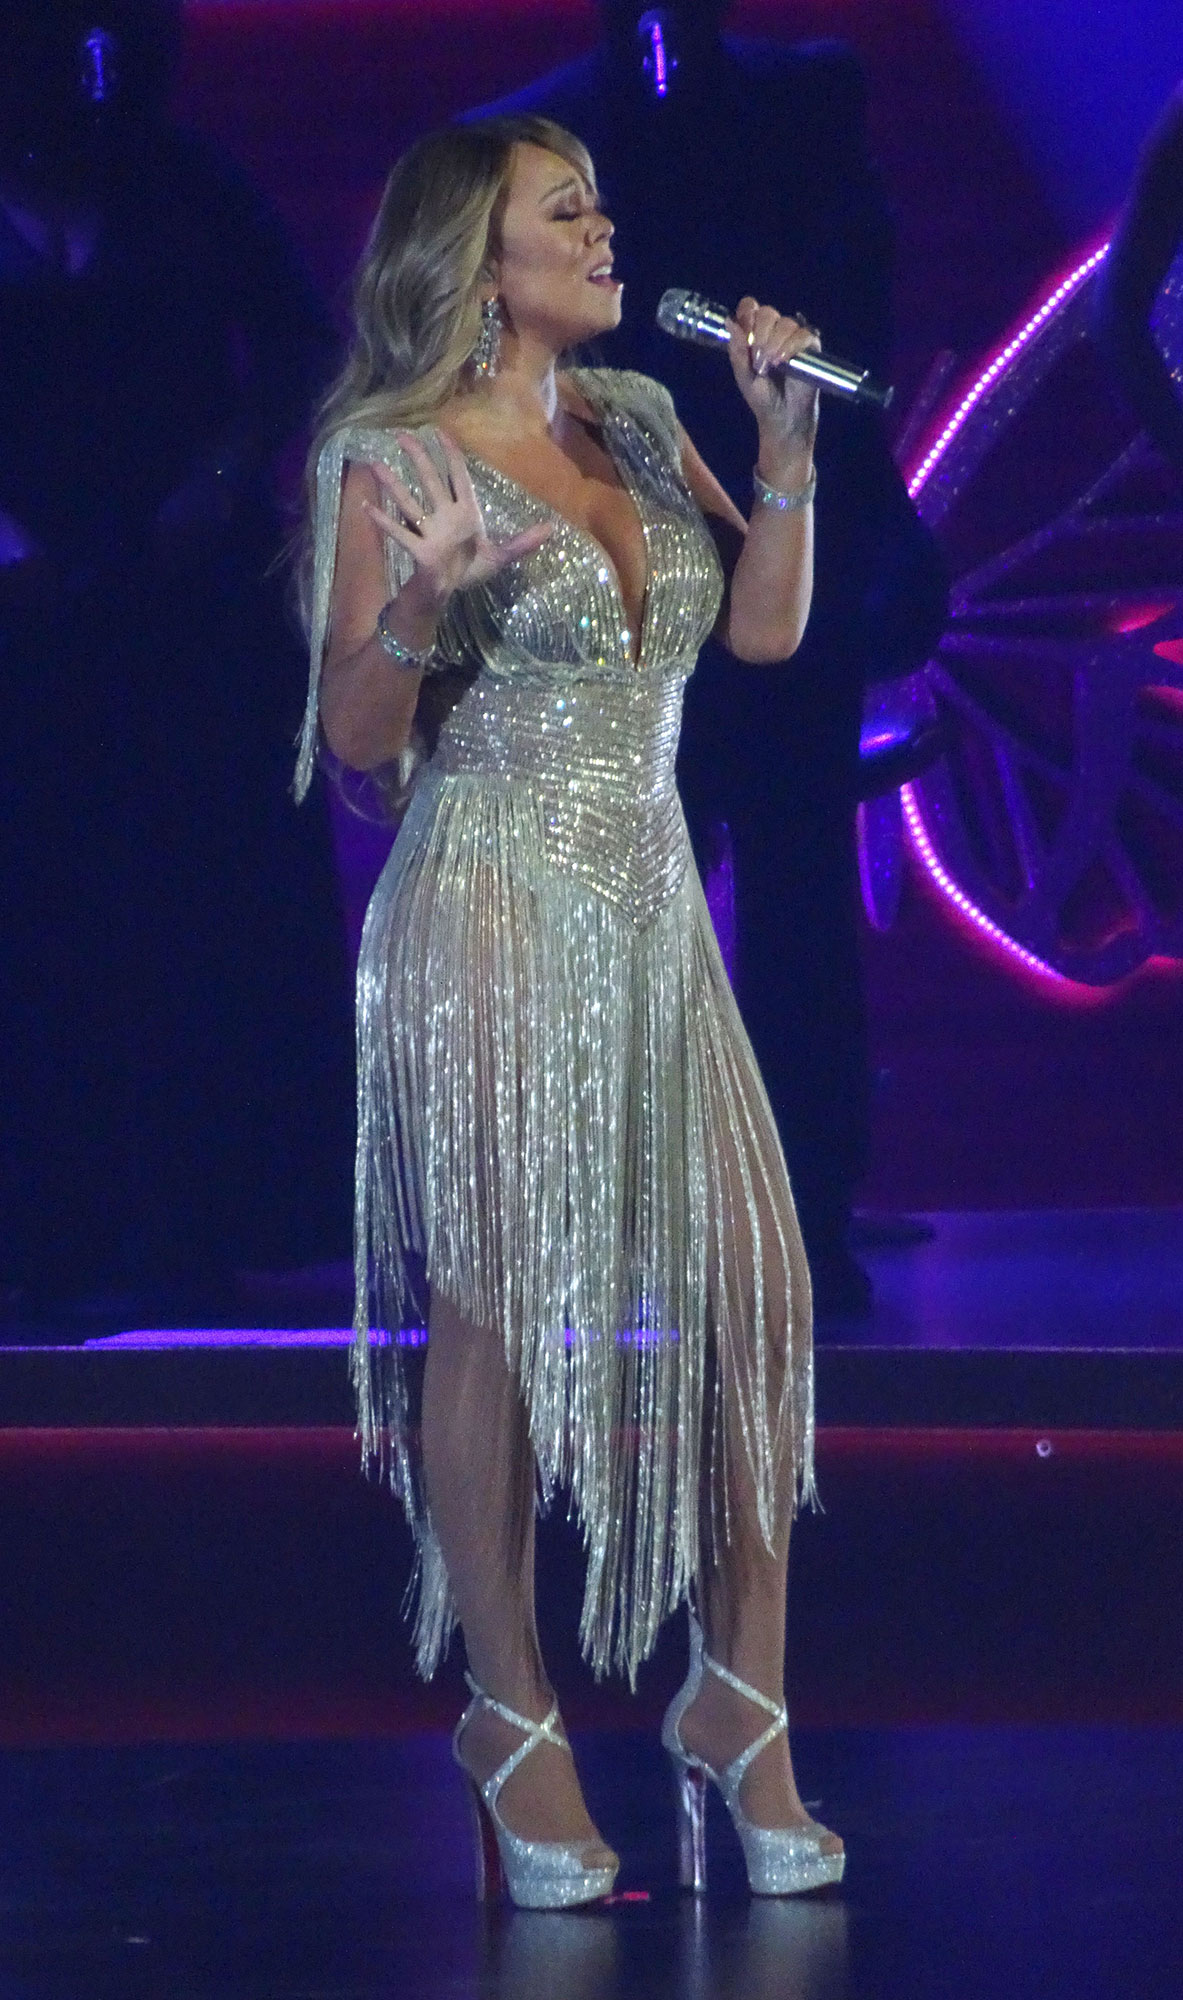 Mariah Carey shows off her curves as she performs on opening night at 'The Butterfly Returns' at Cesar's Palace in Las Vegas.